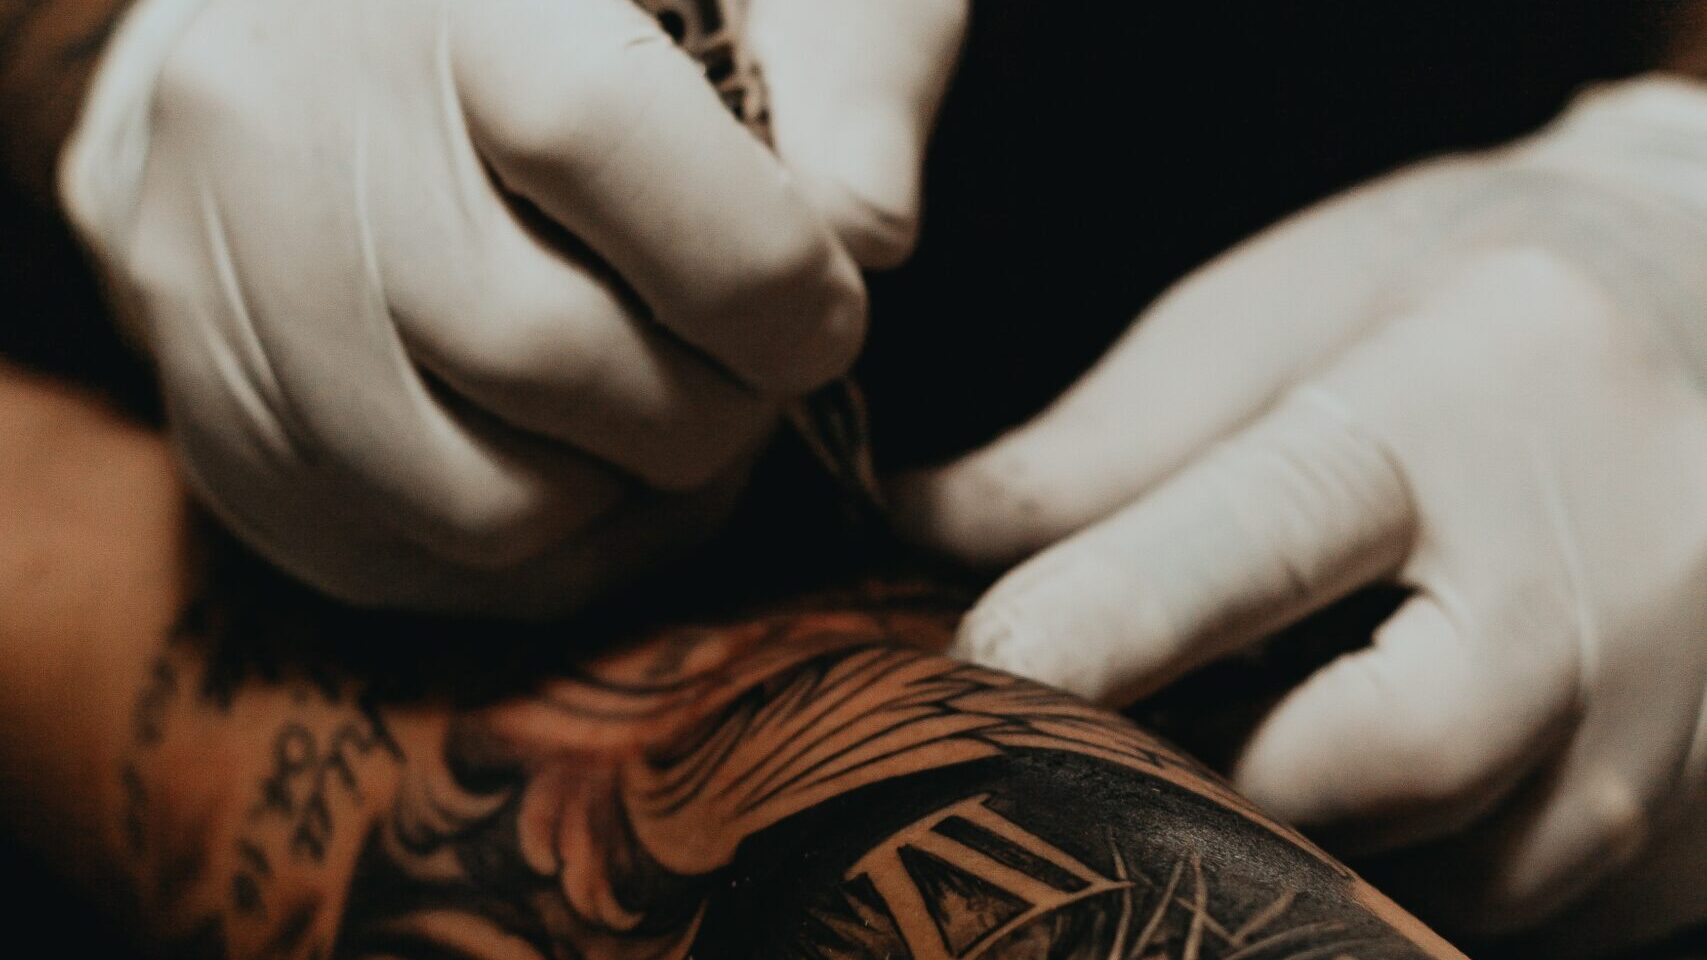 Inked! Tattoos Carry A Long Cultural History